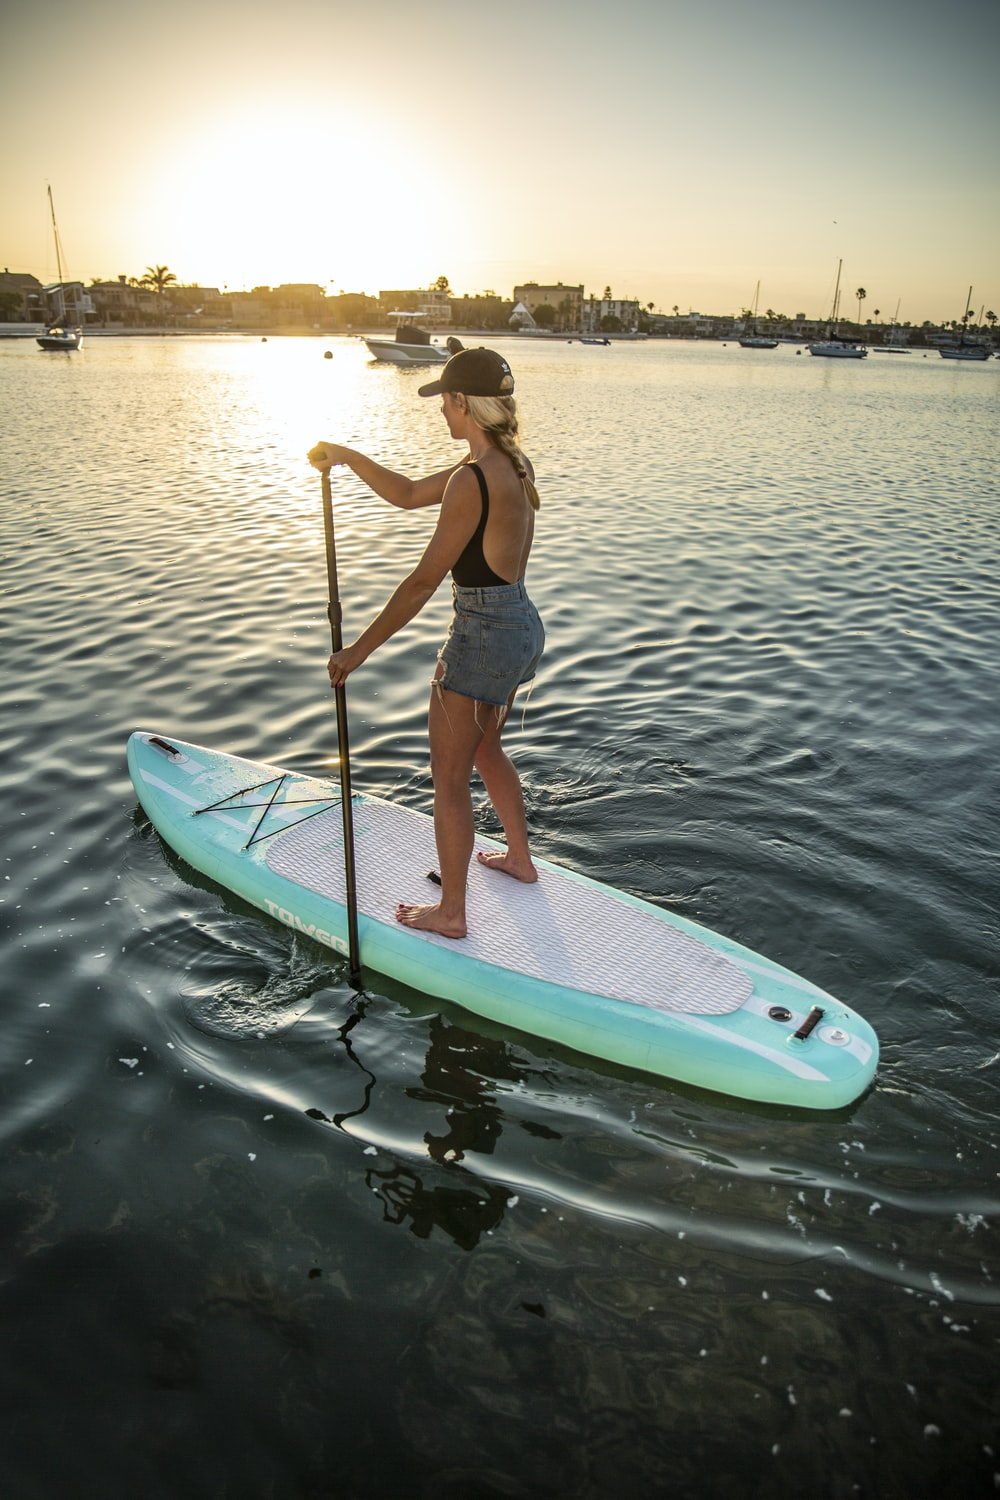 woman in blue and white shorts riding on white and green surfboard during daytime